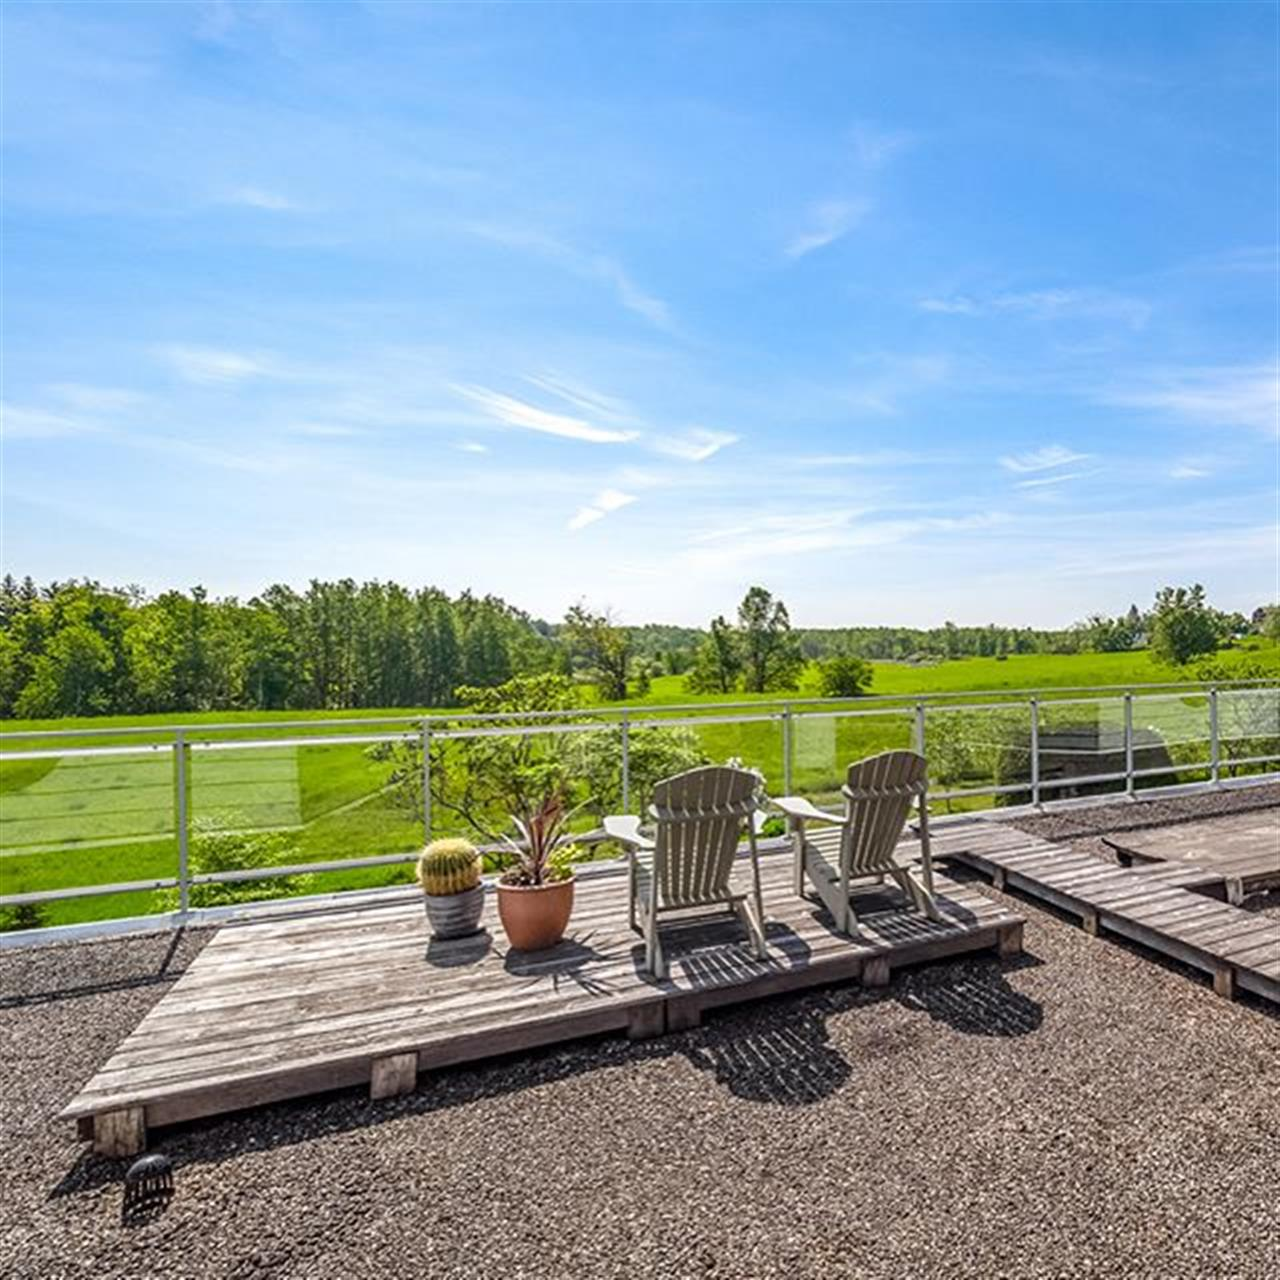 If outdoor living is your thing, then give us a ring - this beauty is gorgeous all year long- not just in spring  ÔÇö> @seantmurphy has all the details  - - - - #outdoorliving #getoutside #livegreen #nature #rooftoppatio #balcony #takeamoment #realestate #forsale #guelpheramosa #getaway #livehere #livehappy #lovewhereyoulive #leadingrelocal #leadingrealestatecompaniesoftheworld